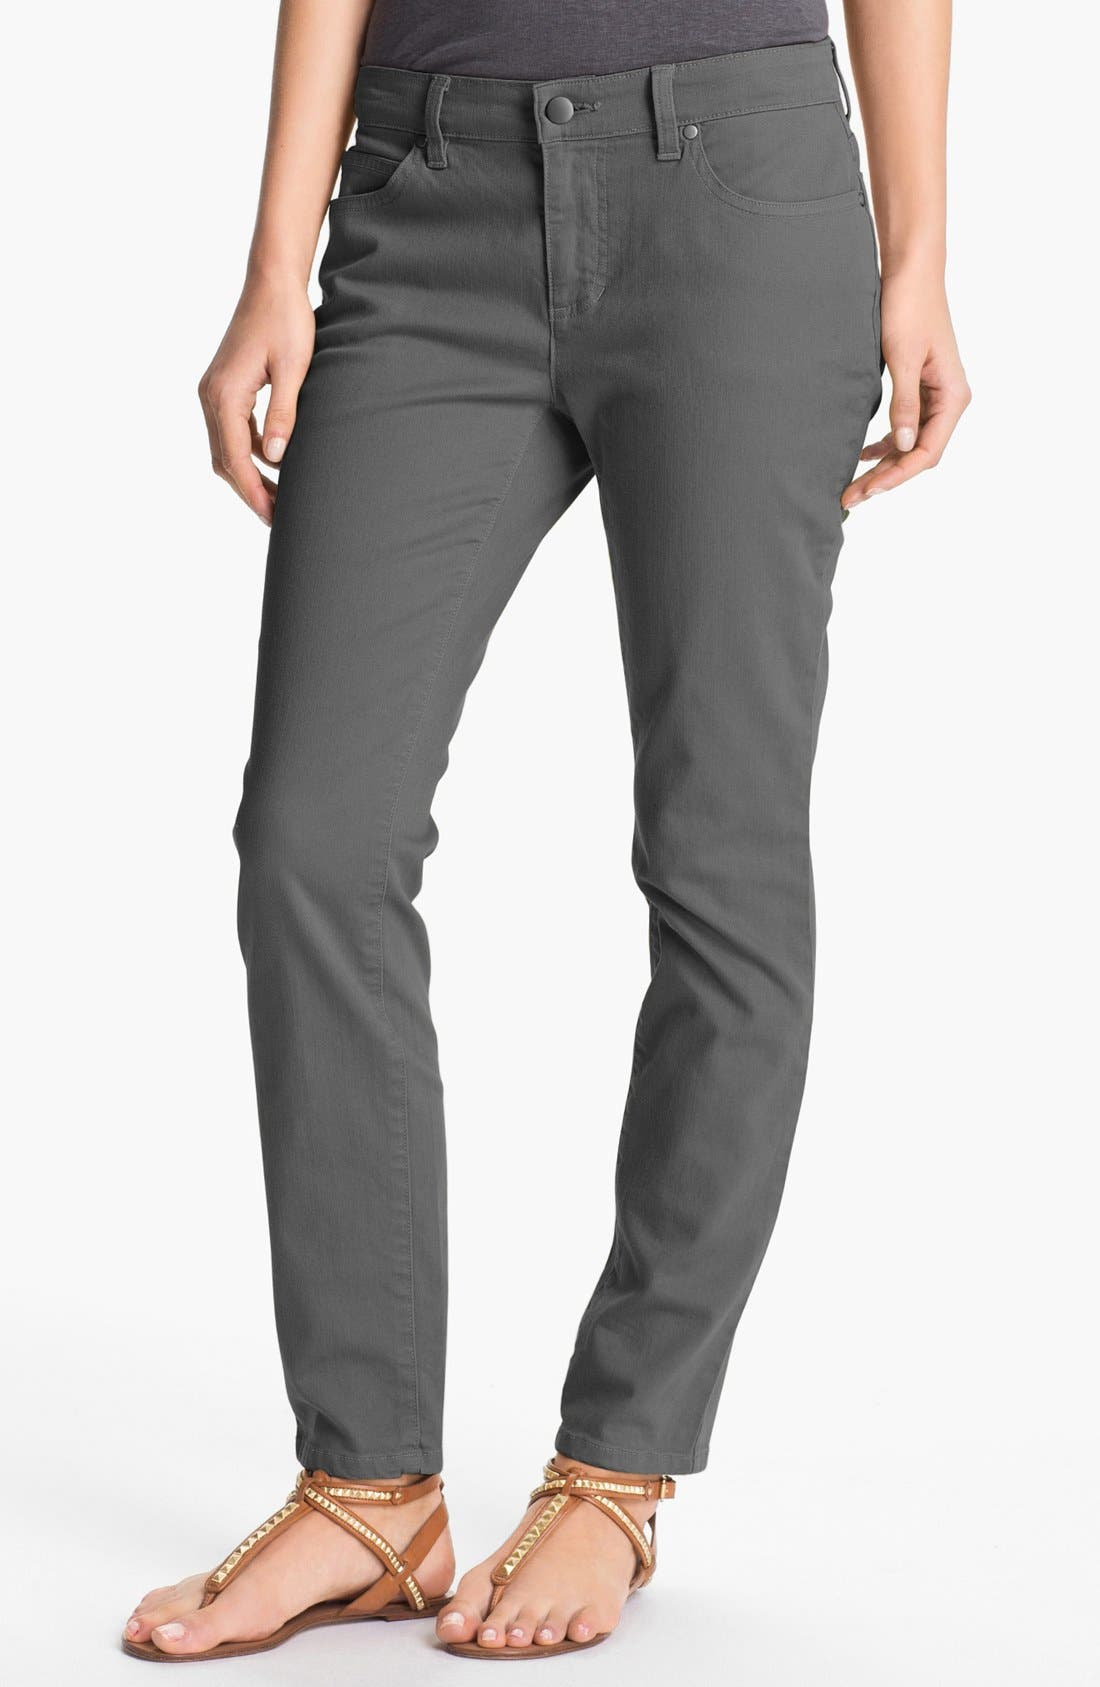 Alternate Image 1 Selected - Eileen Fisher Skinny Ankle Jeans (Regular & Petite)